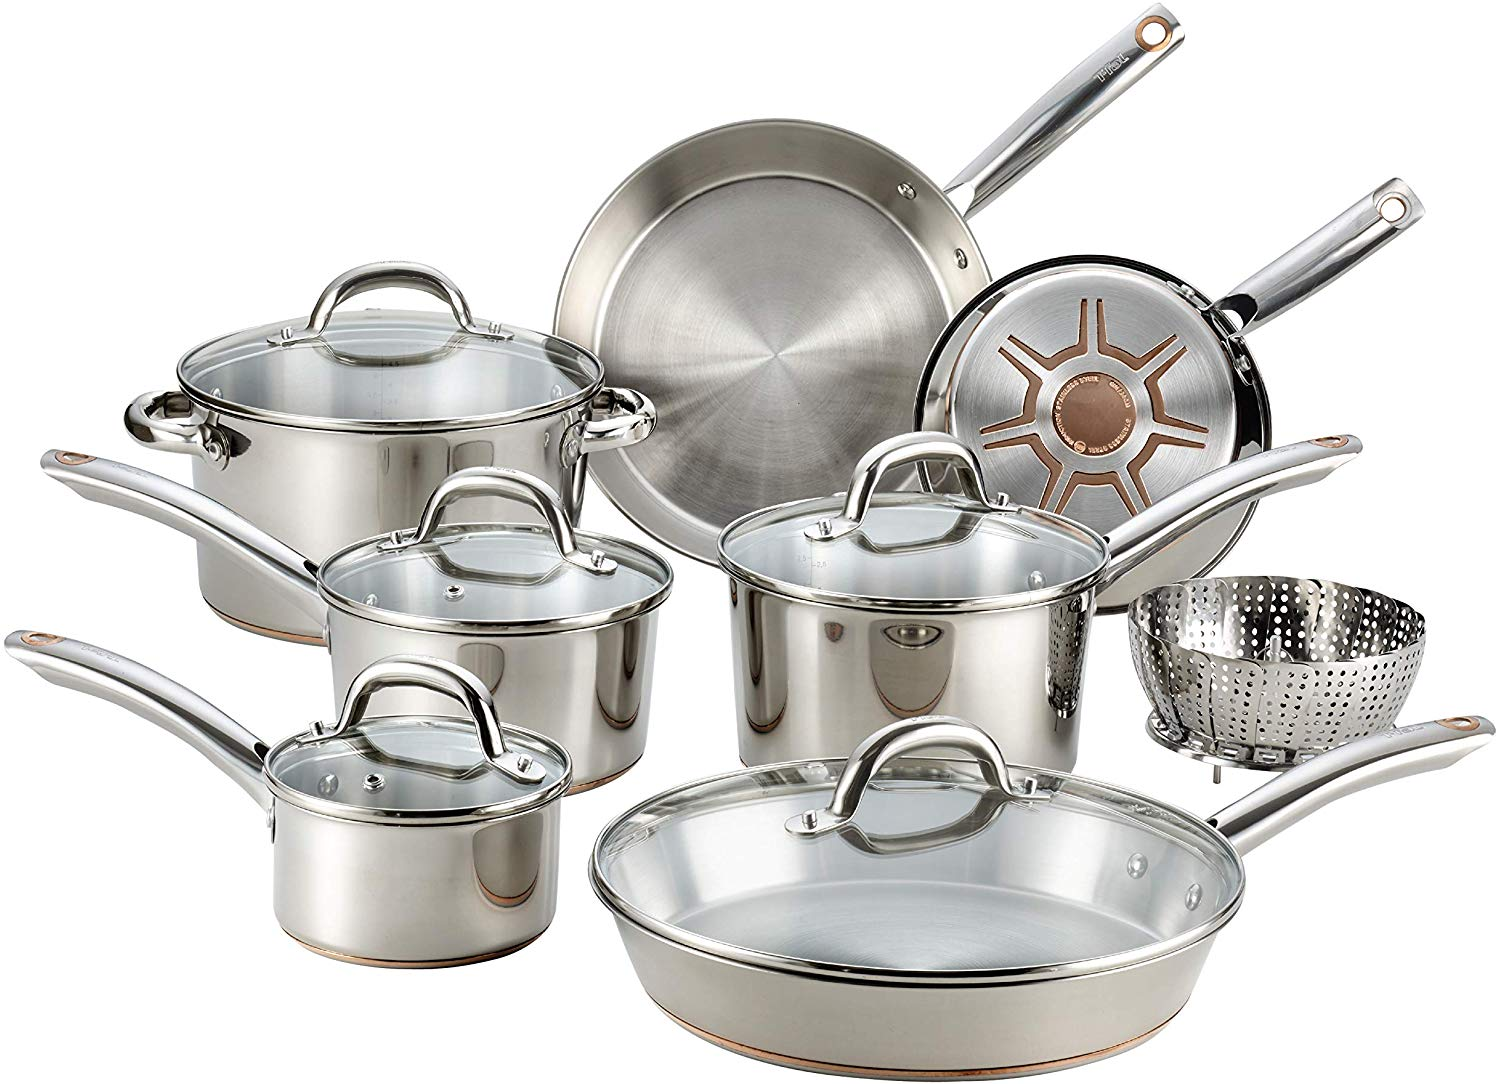 T-fal C836SD Ultimate Copper Bottom Cookware Set